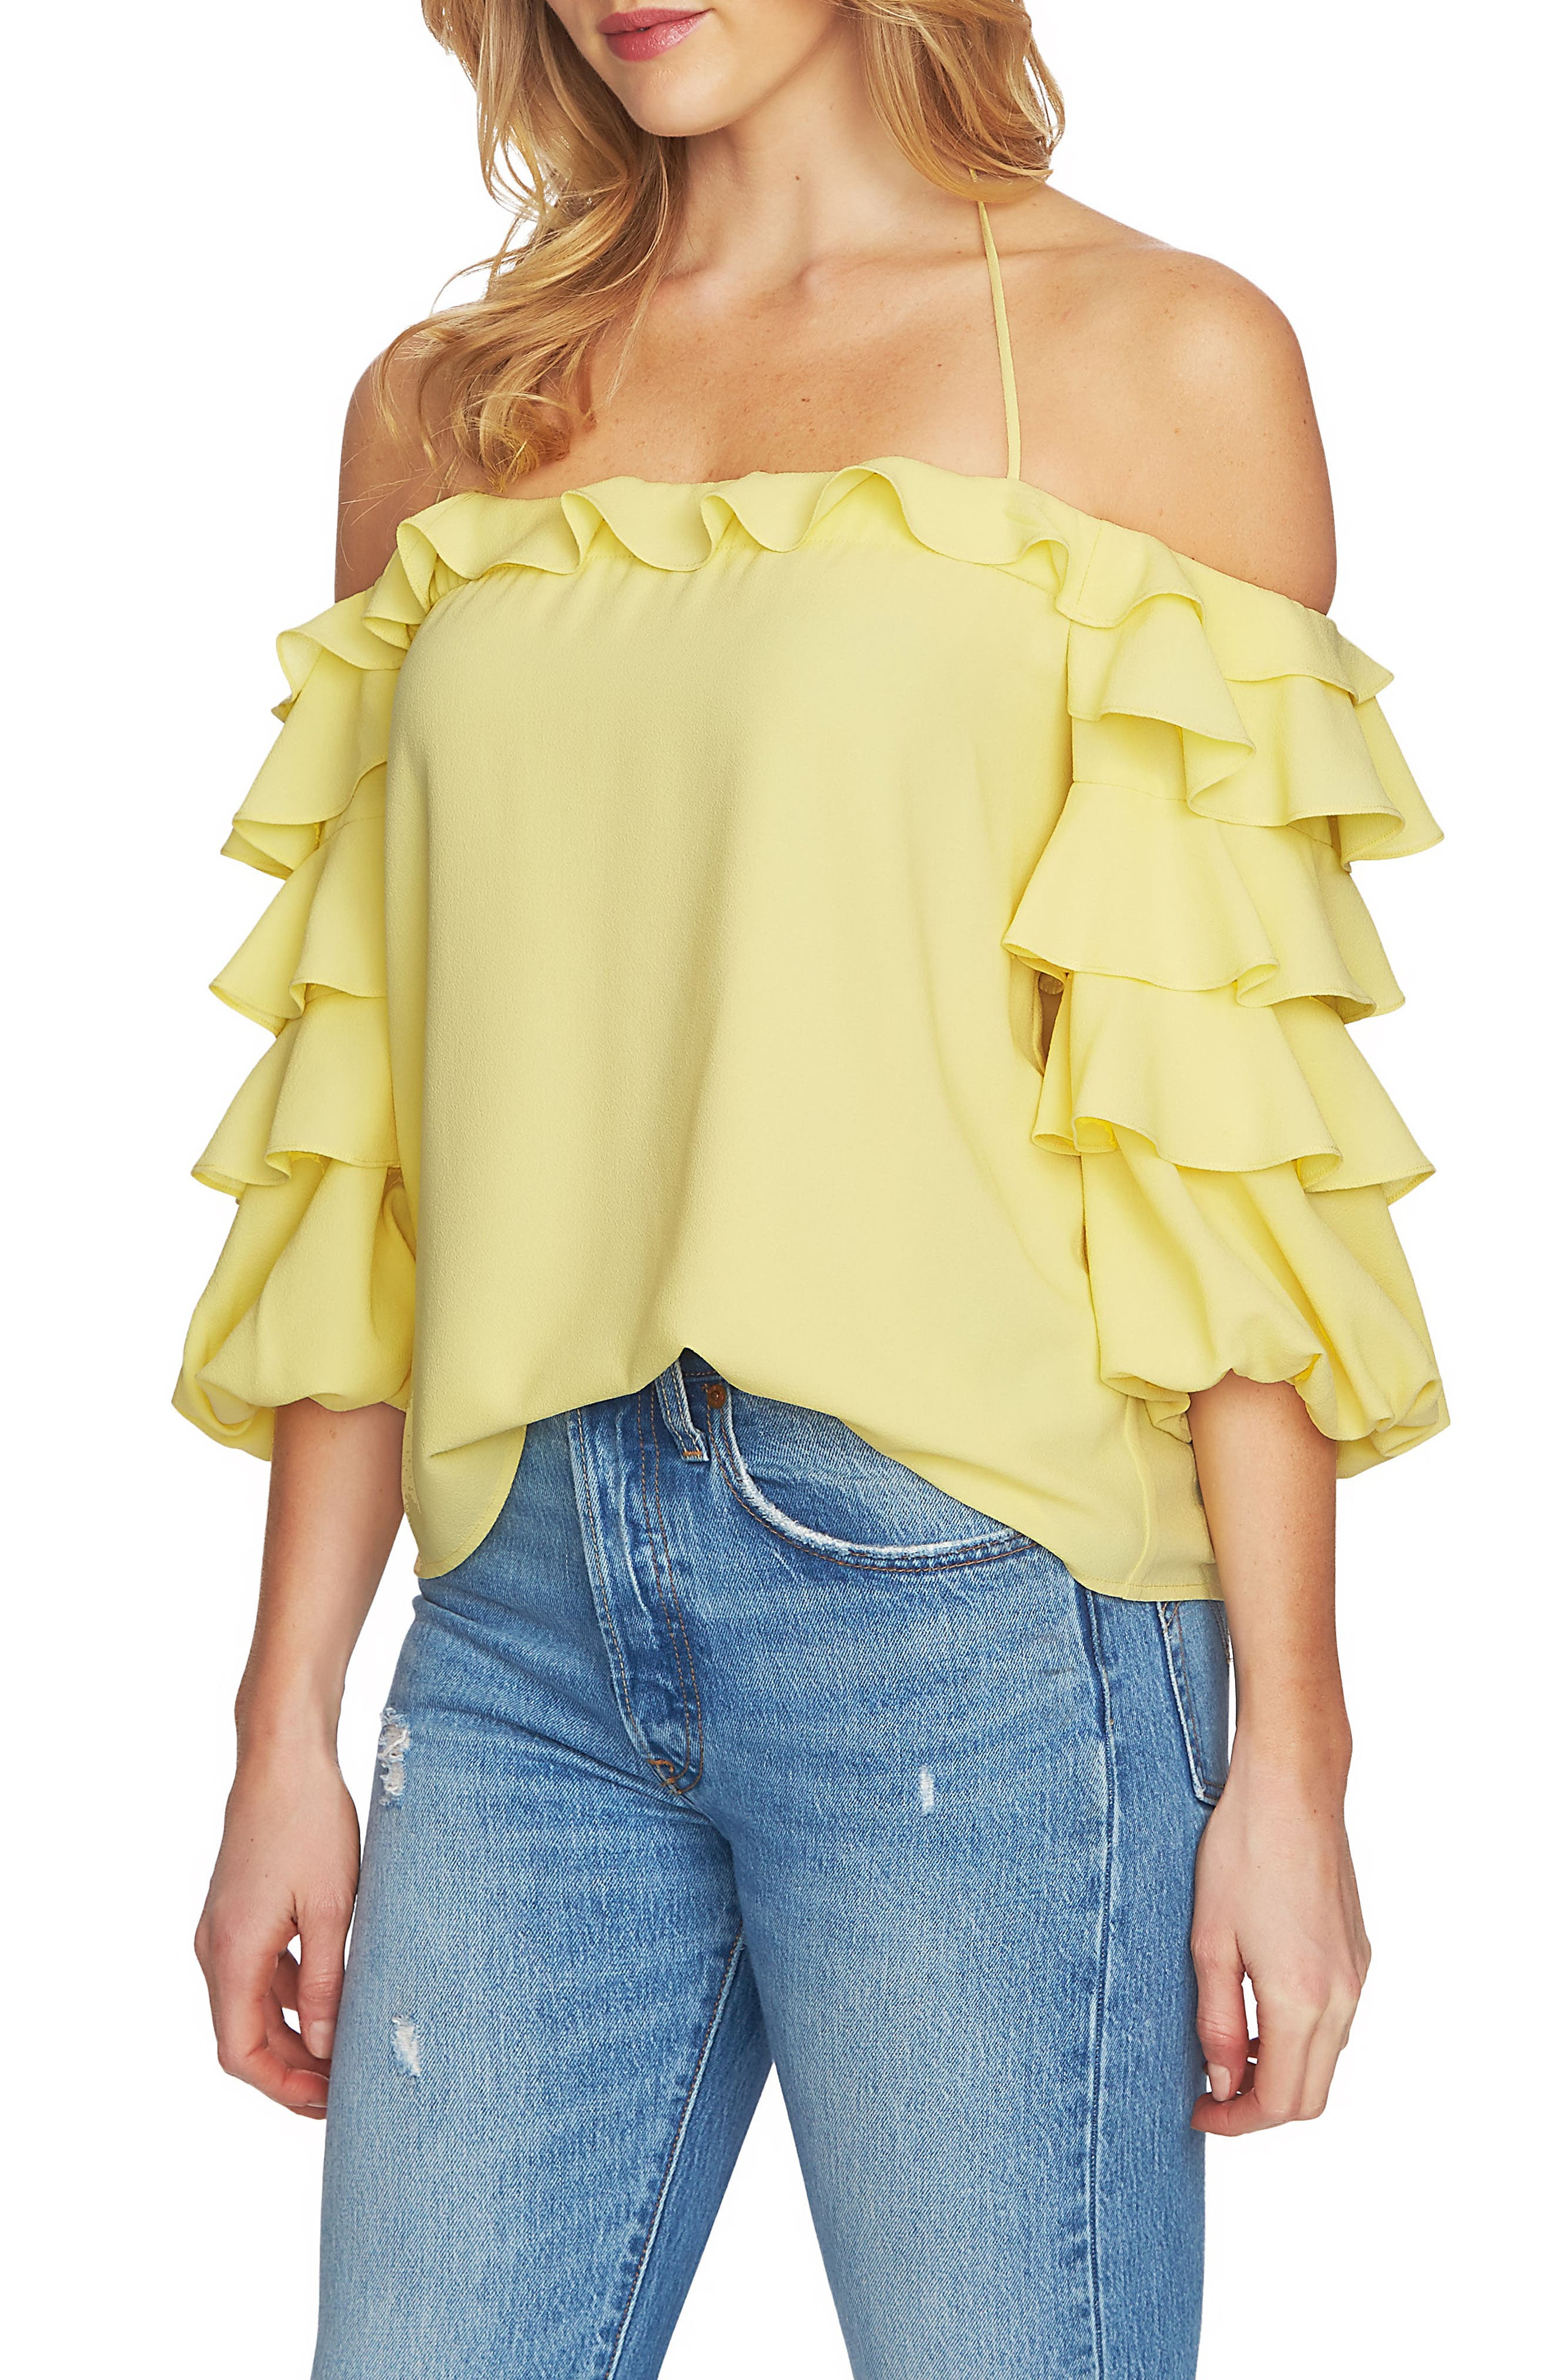 Main Image - 1.STATE Tiered Ruffle Sleeve Off the Shoulder Top